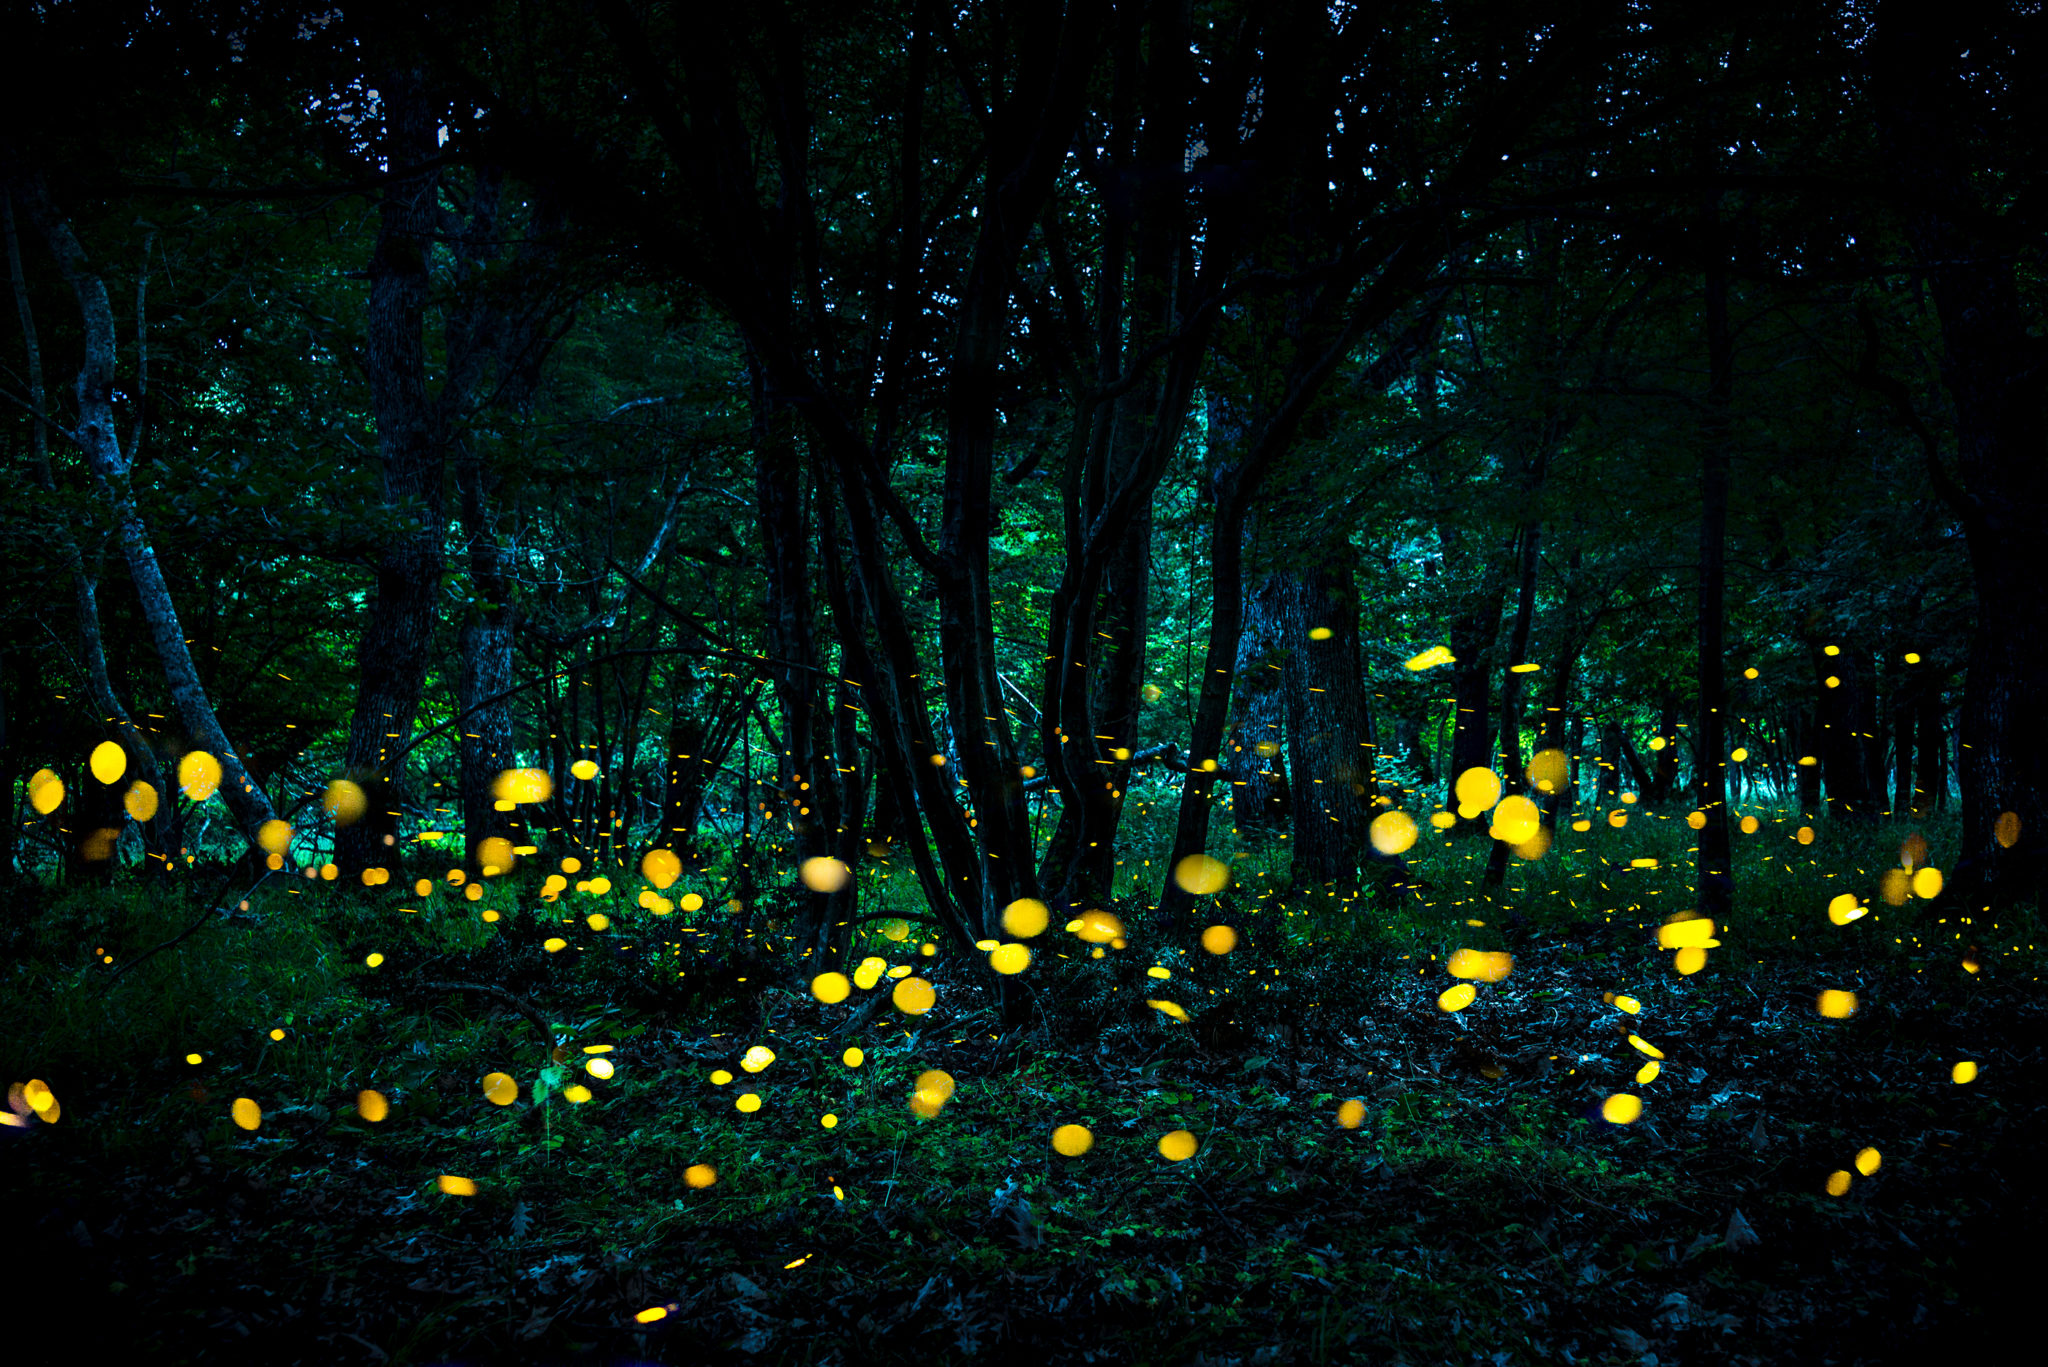 Fireflies in Great Smoky Mountains National Park